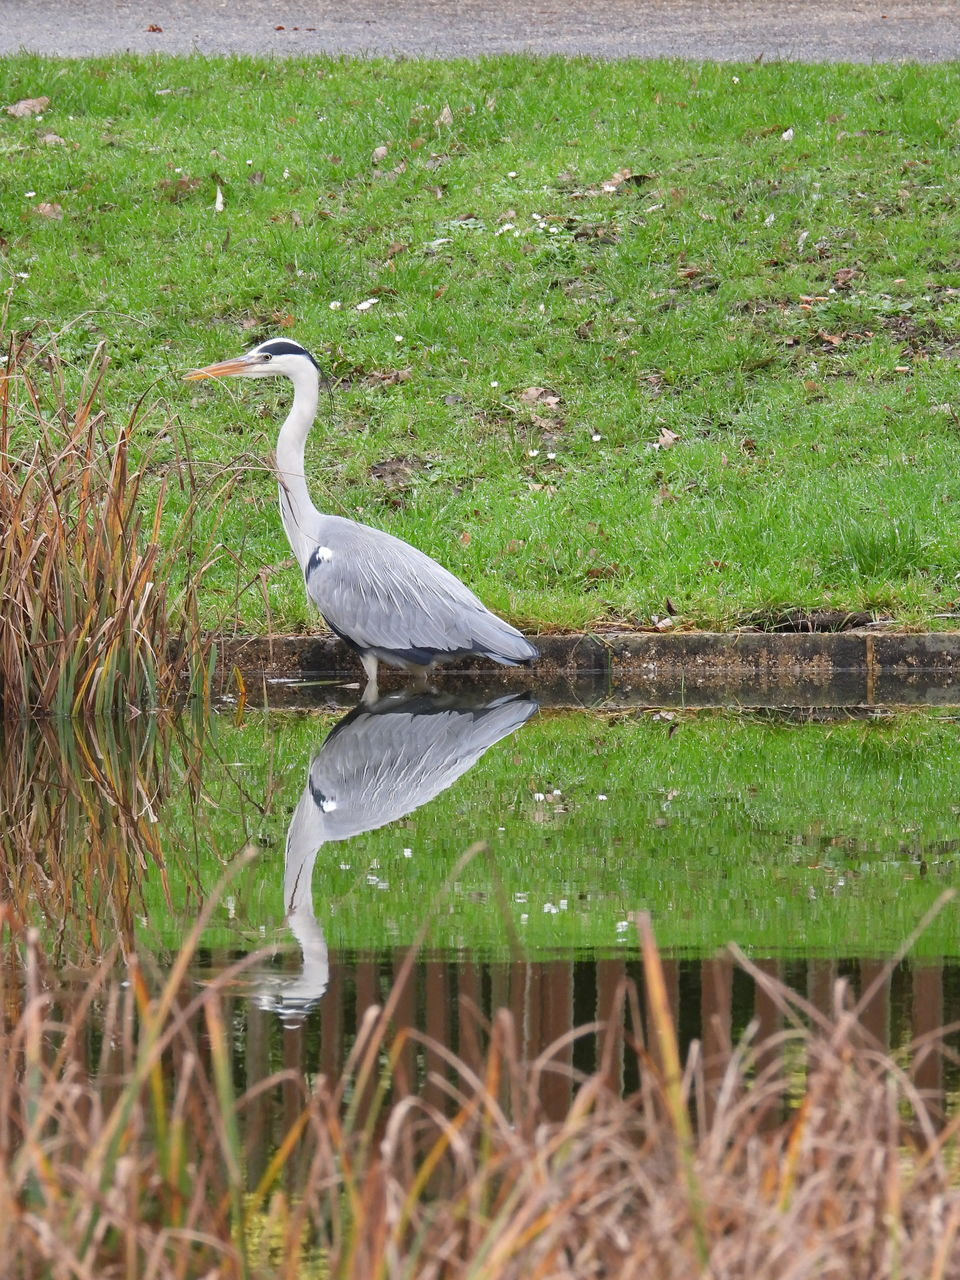 animals in the wild, animal wildlife, animal, vertebrate, bird, animal themes, grass, plant, one animal, heron, water, no people, perching, nature, land, day, green color, water bird, beauty in nature, outdoors